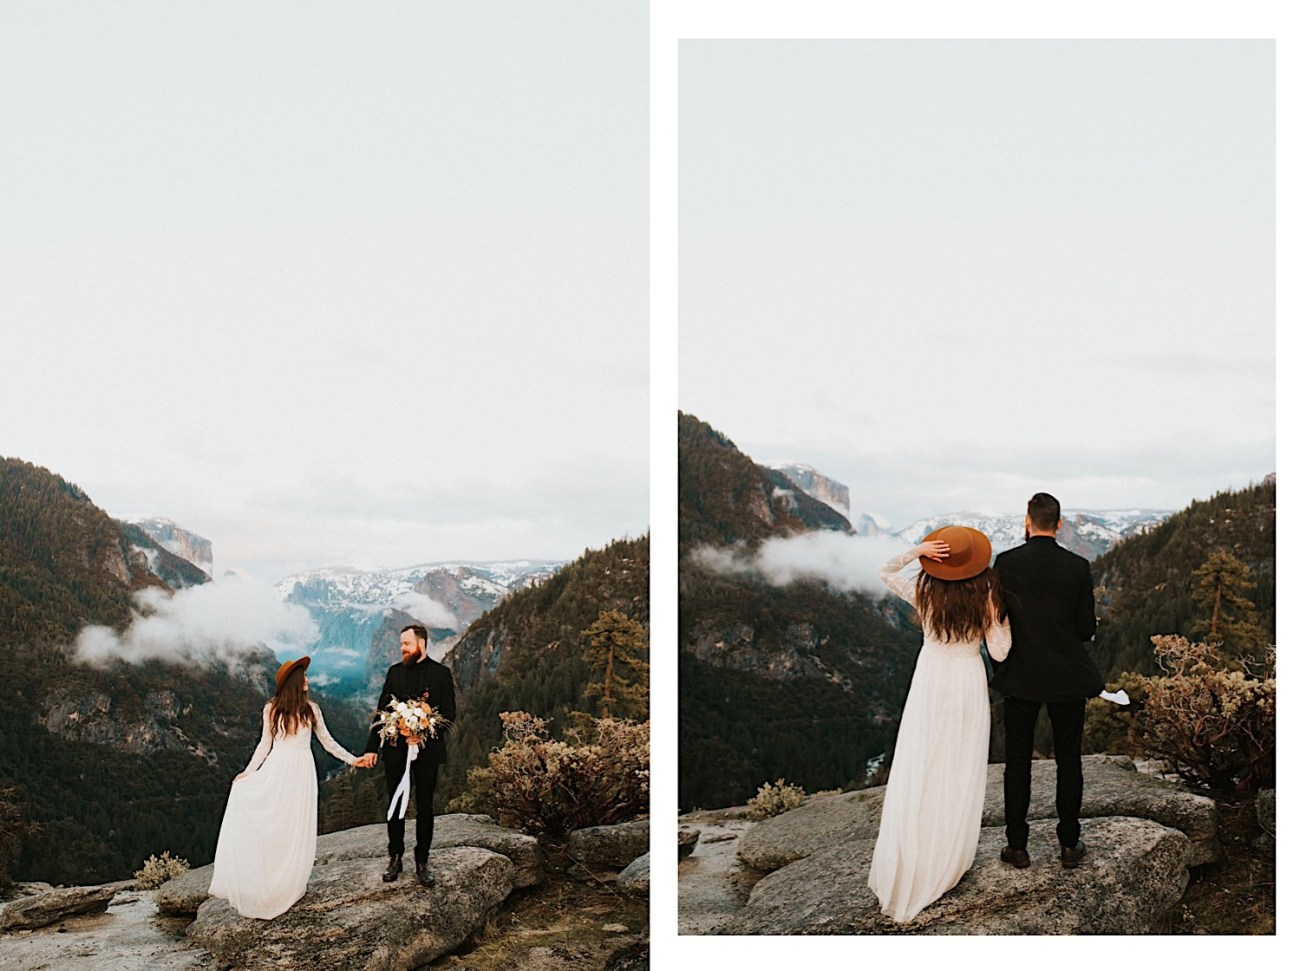 Reasons Why You Should Elope Top Reasons To Elope Elopement Photographer Yosemite National Park Elopement 021